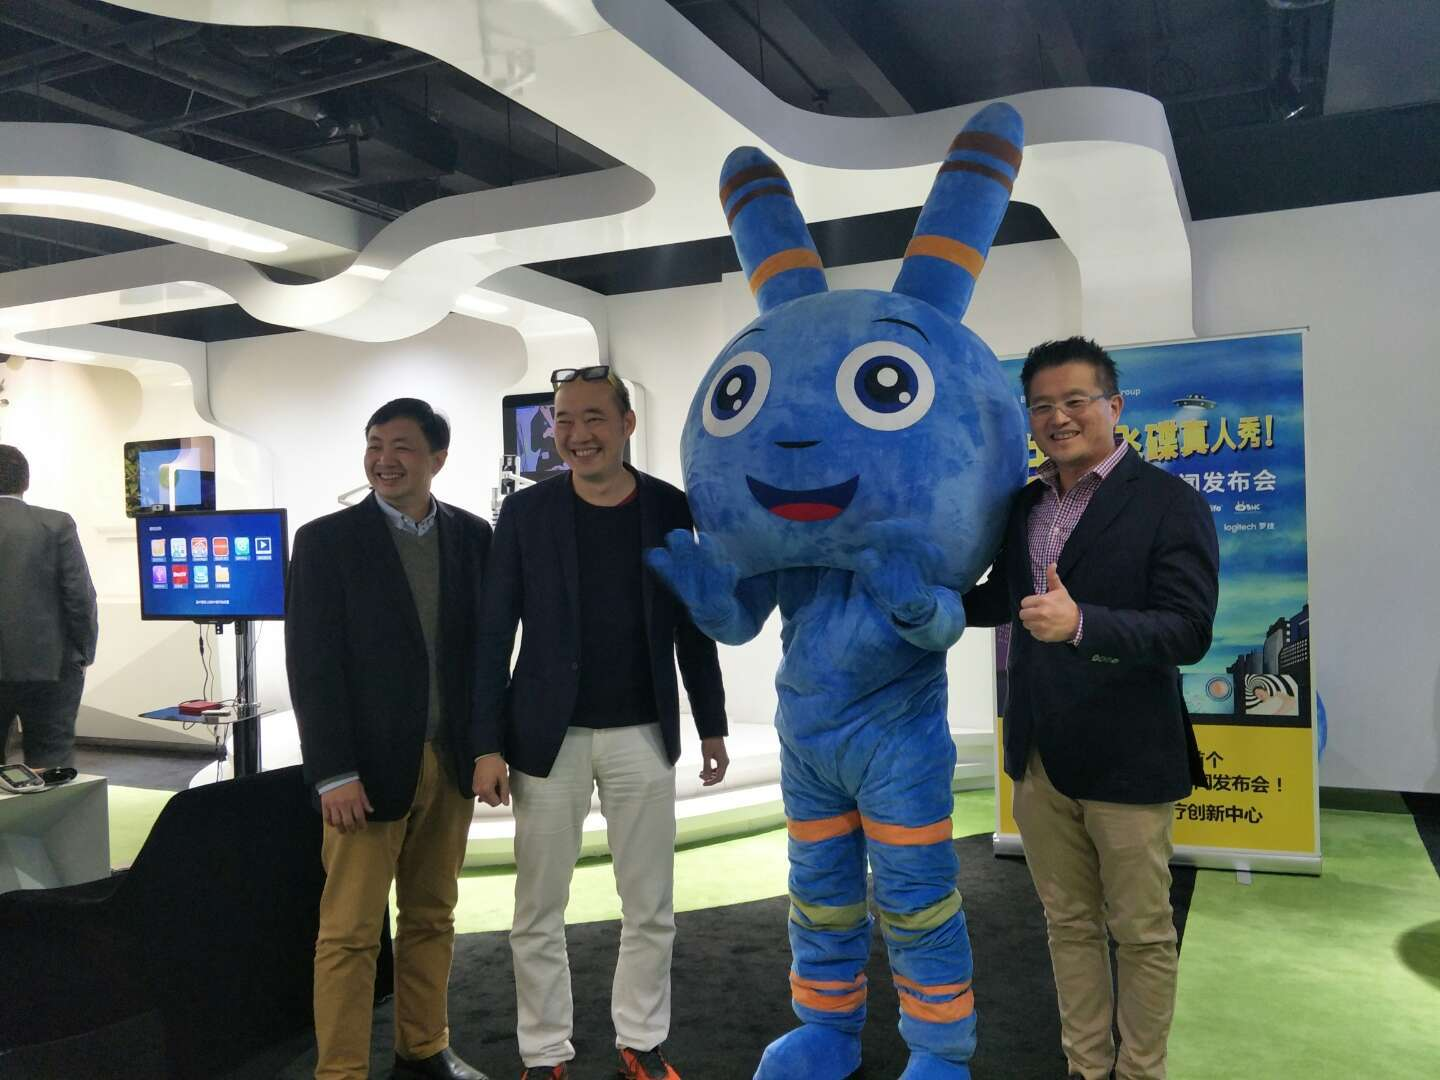 BHG Clinic IVF doctor specialists standing with blue chromosome character in the middle. From left to right: Dr Mun Yew Wong from Singapore, Dr Wei Siang Yu (founder and chairman of BHG Clinic), Dr Kenneth Leong from Melbourne, Australia